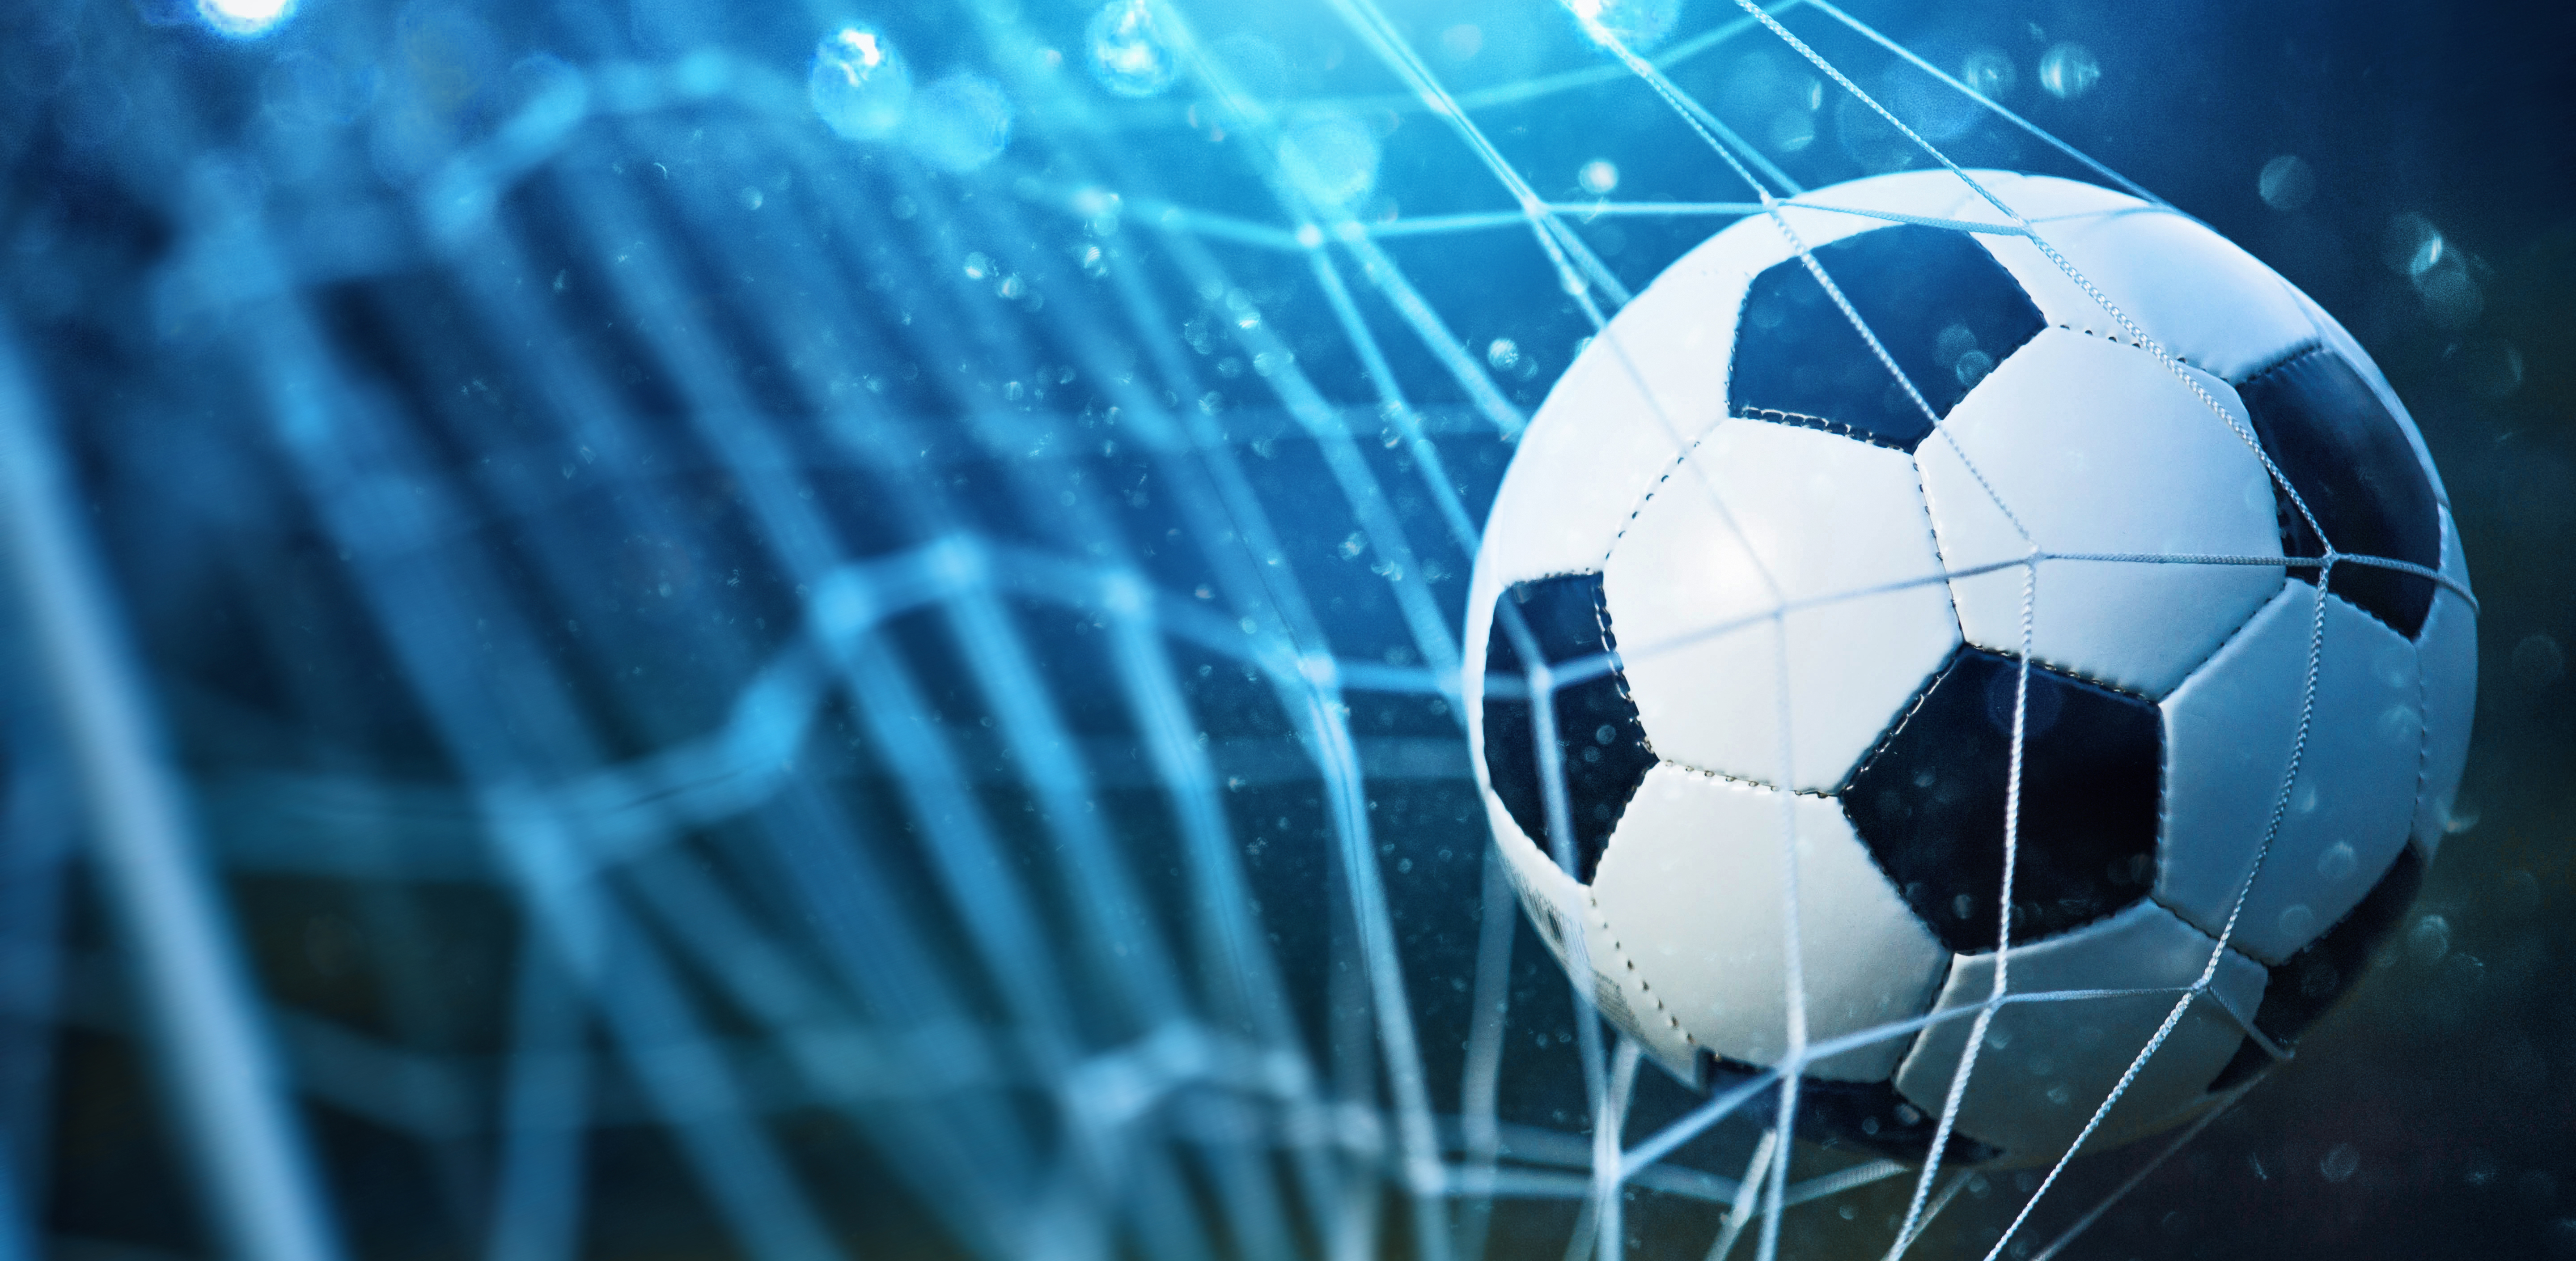 Pictured is a soccer ball. SHUTTERSTOCK/Pasko Maksim